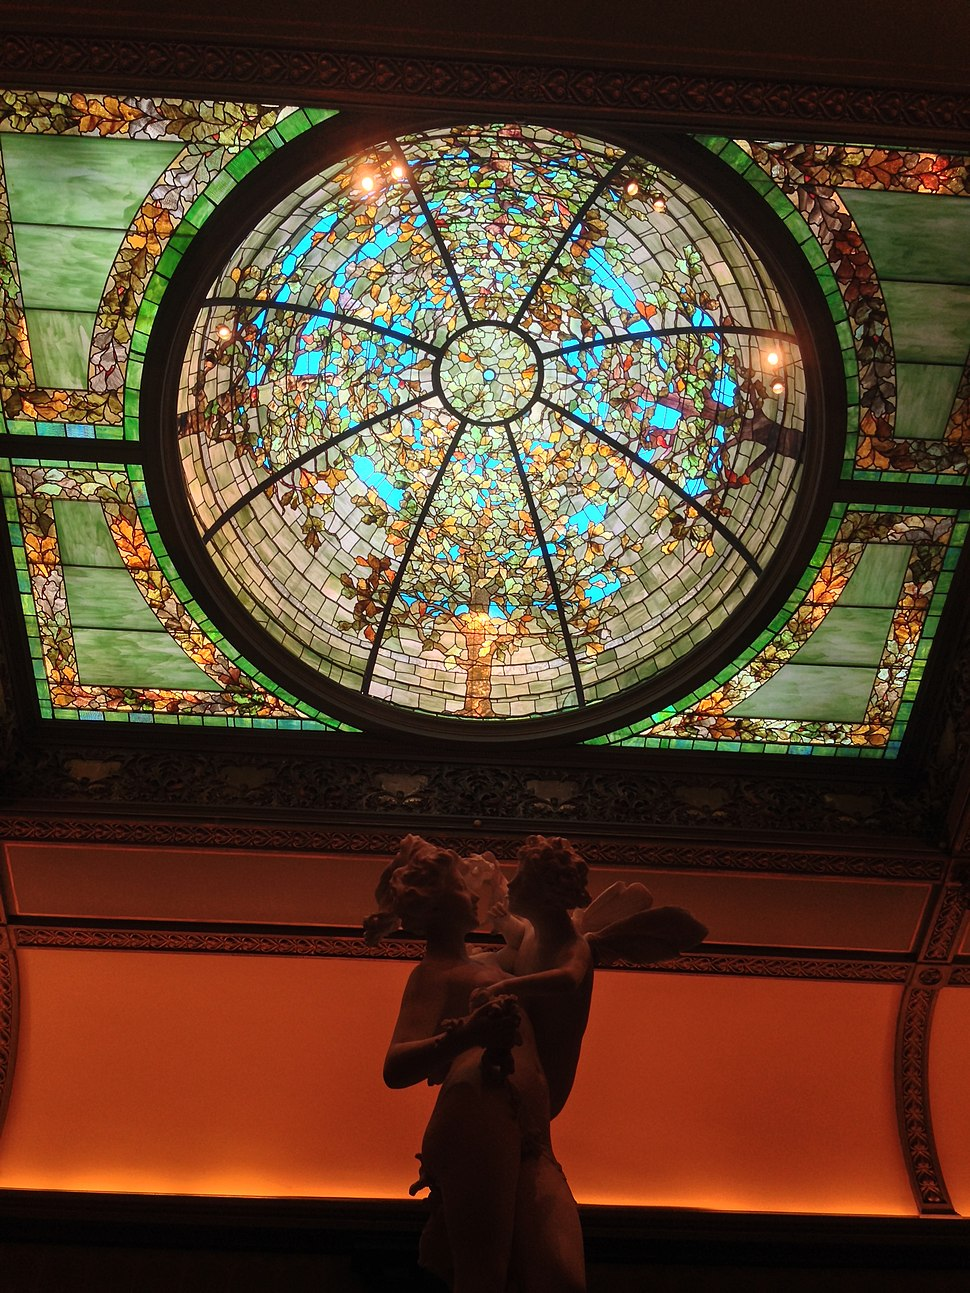 Sculpture and stained glass at Richard H Driehaus museum